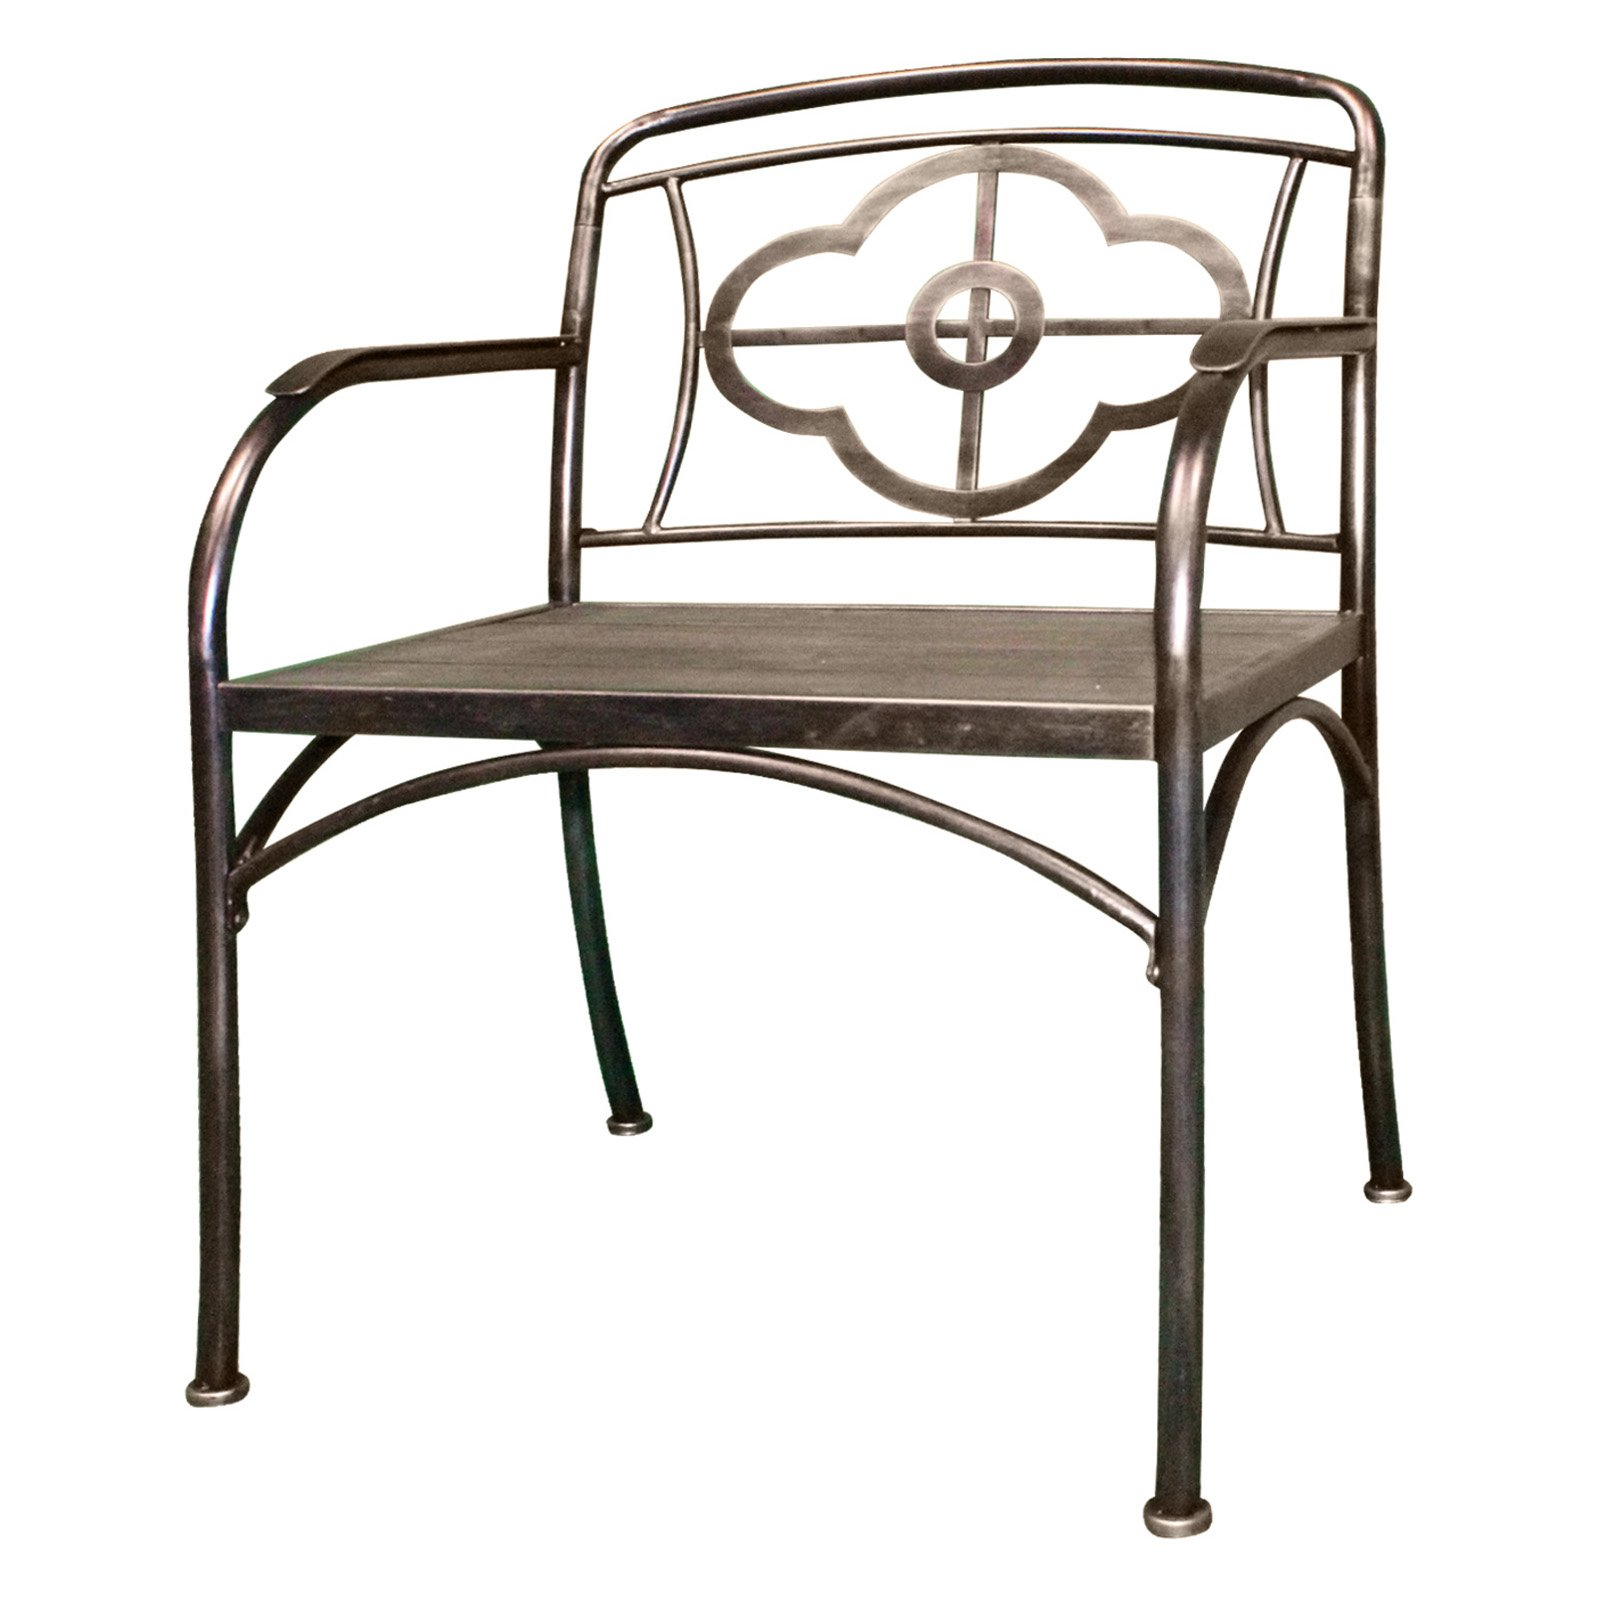 HomeGig Clover Metal and Wood Outdoor Chairs - Set of 2